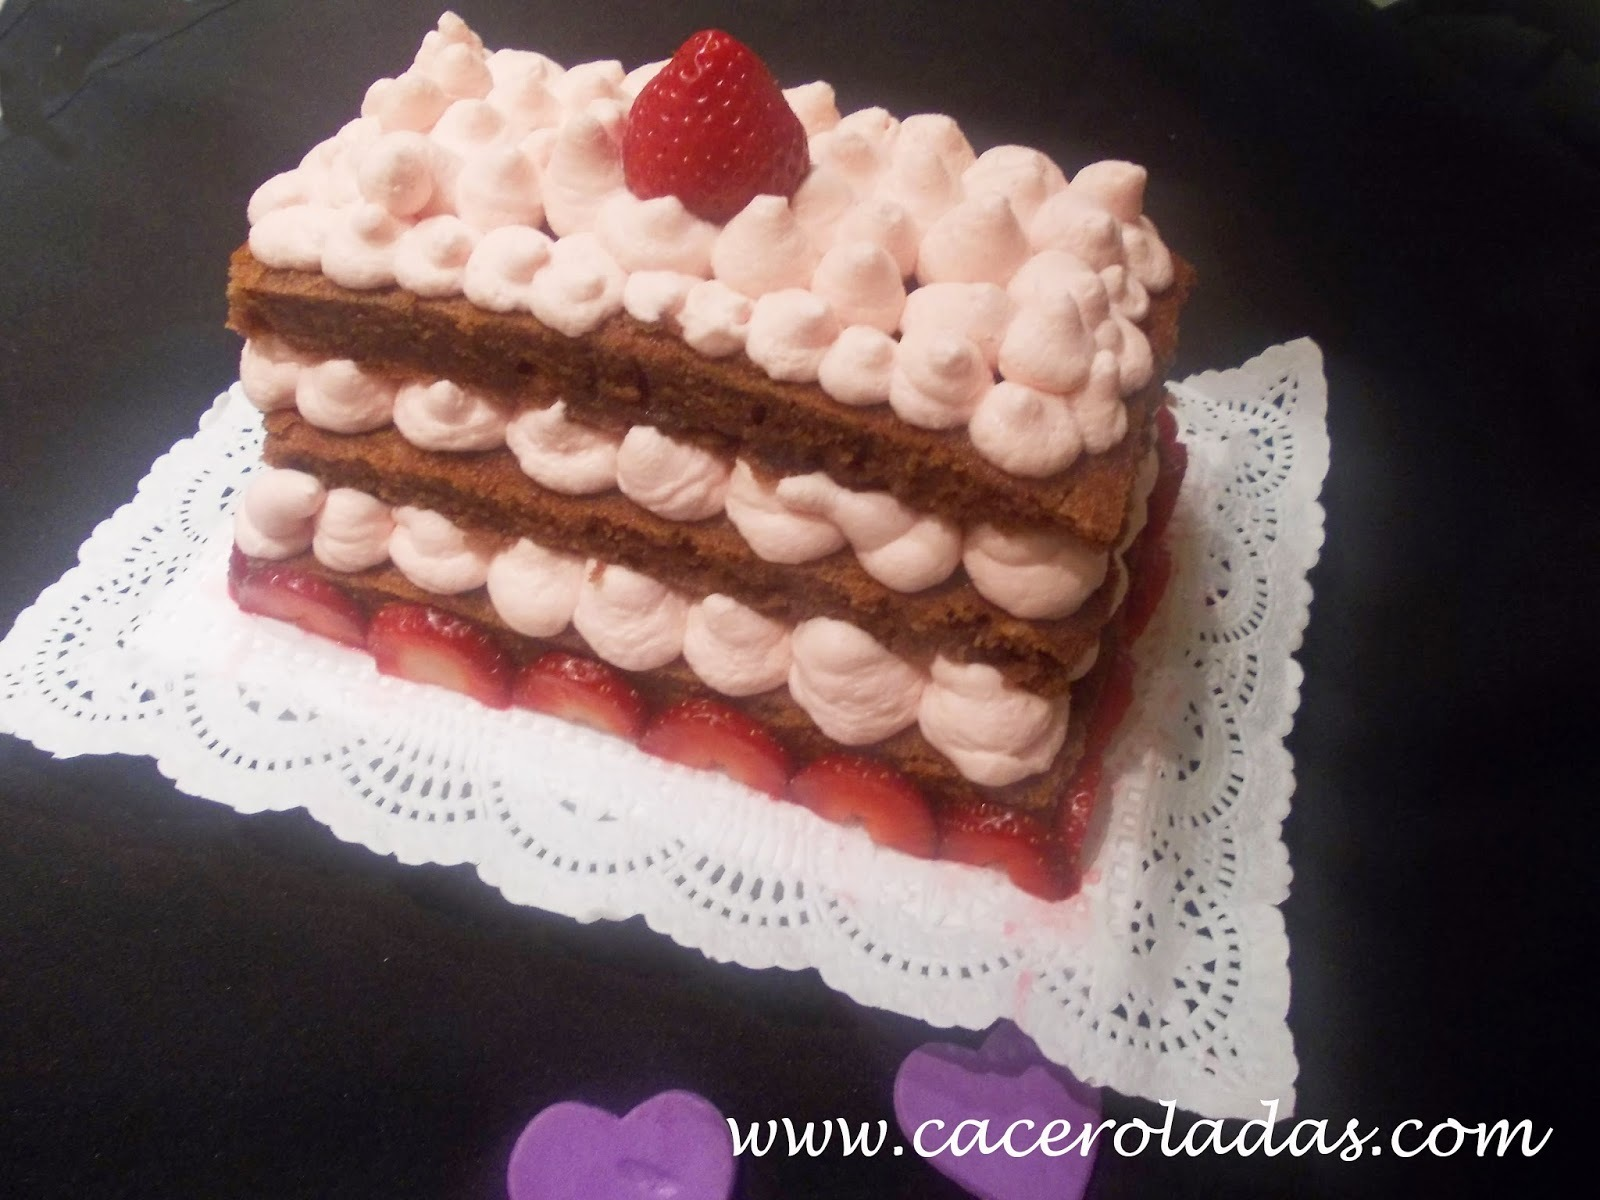 Tarta de chocolate con chantilly de fresa